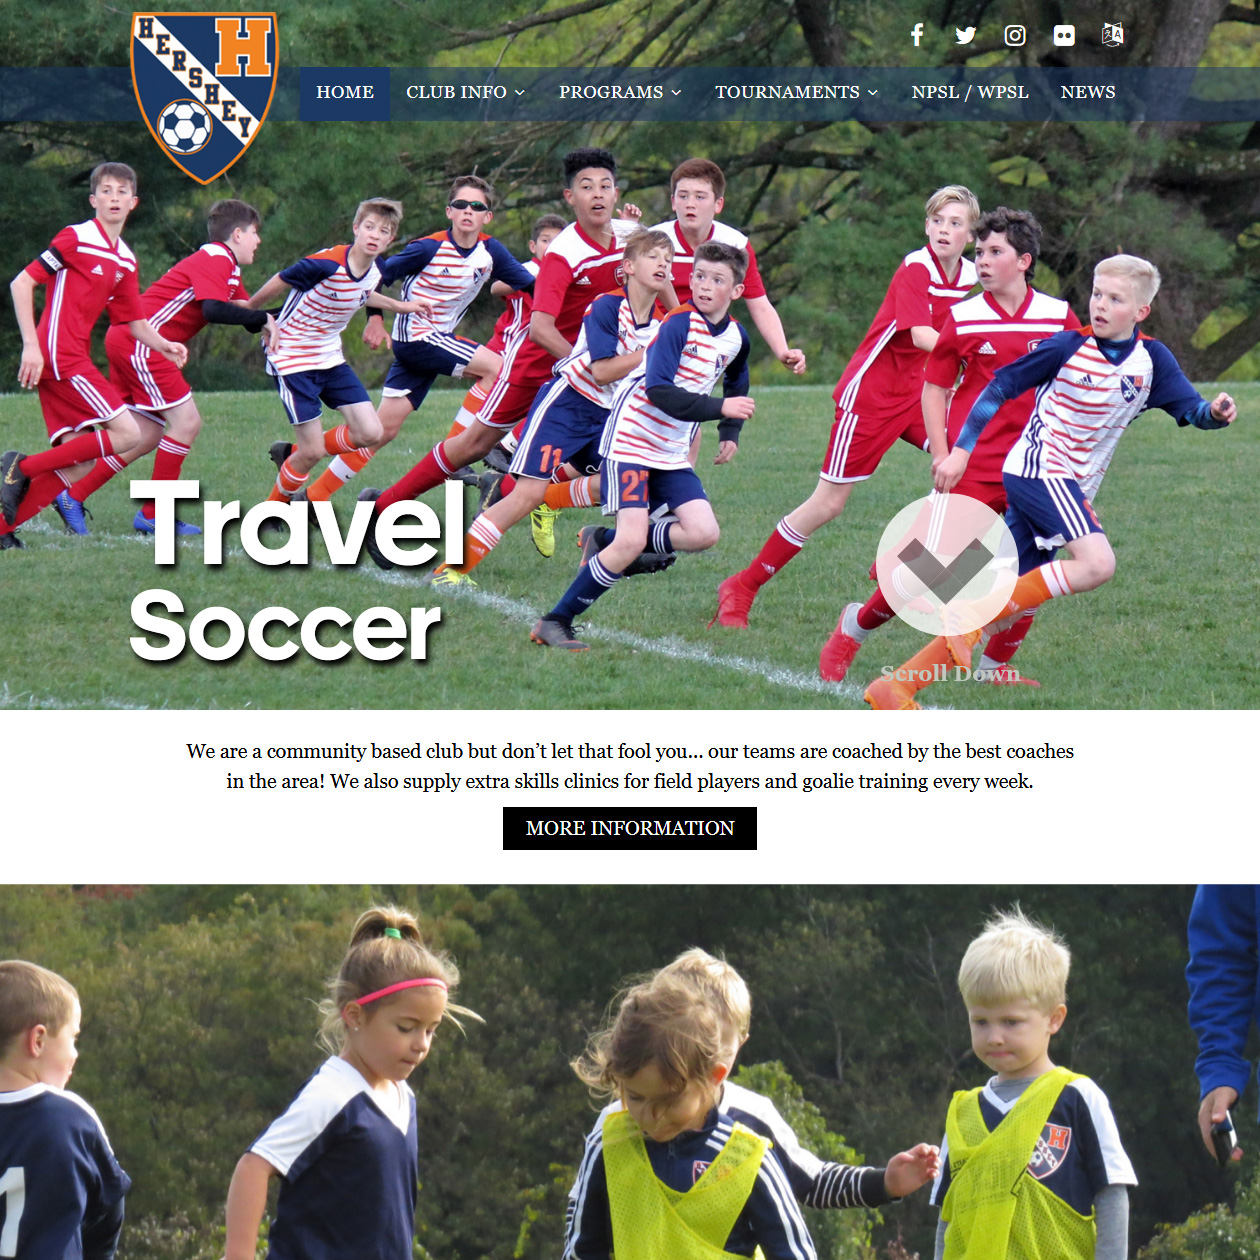 Hershey Soccer Club - soccer club website design